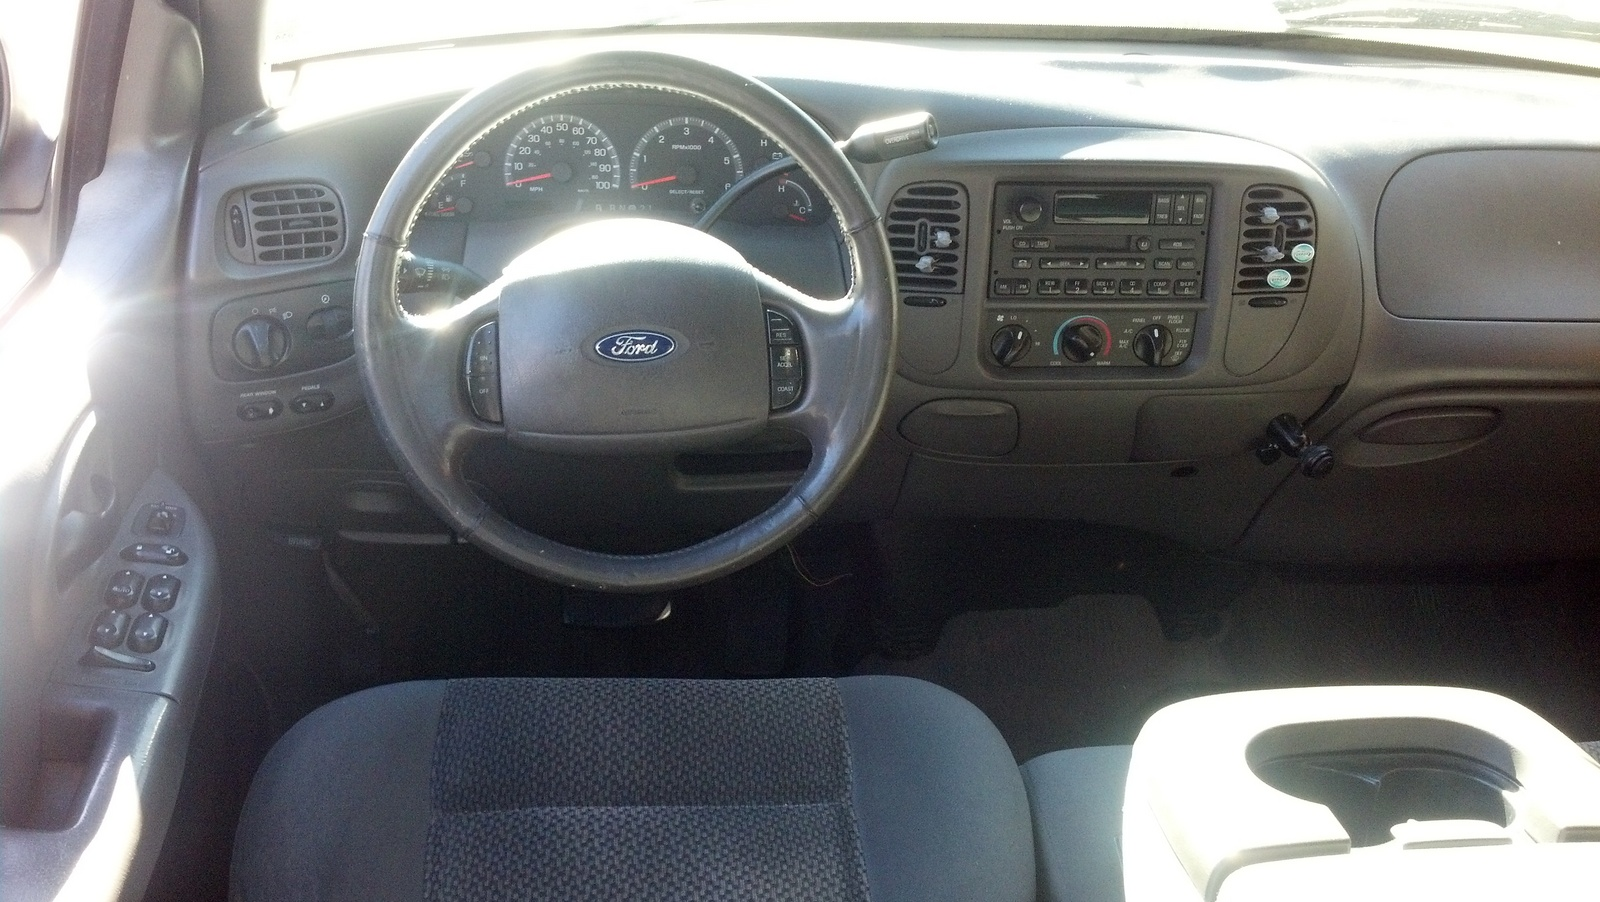 T8682570 Remove rear seat in 2004 ford f 150 further Fotos De Trocas Ford Lobo IyEarxRny further Images Of 2002 Ford F 150 4x4 Supercrew 19be79d1d0d67830 likewise Ford F150 1999 also Watch. on 2006 f150 crew cab